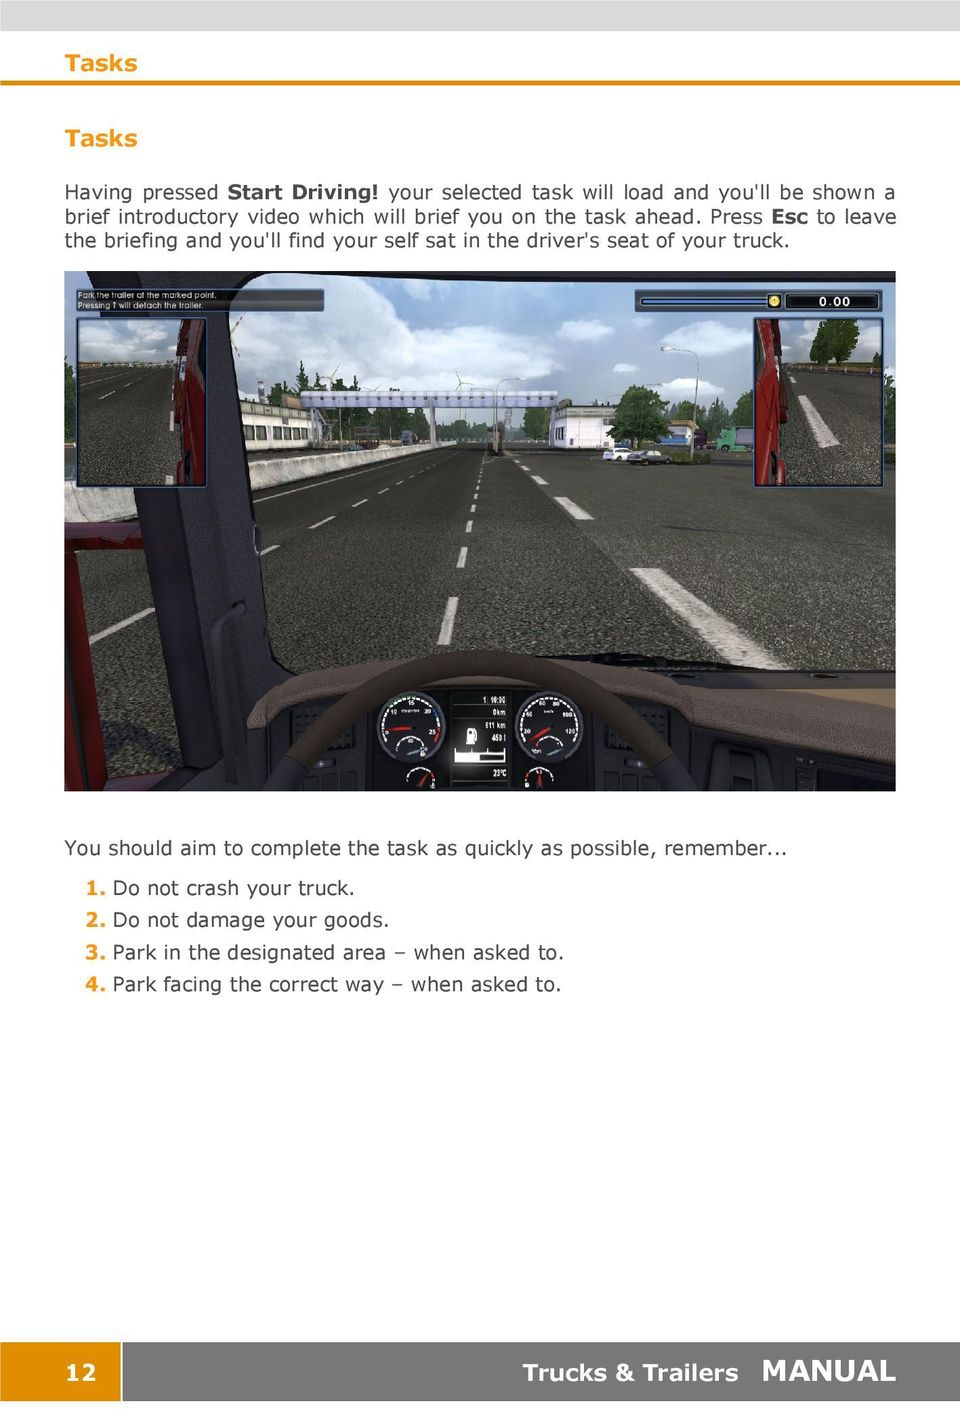 Press Esc to leave the briefing and you'll find your self sat in the driver's seat of your truck.